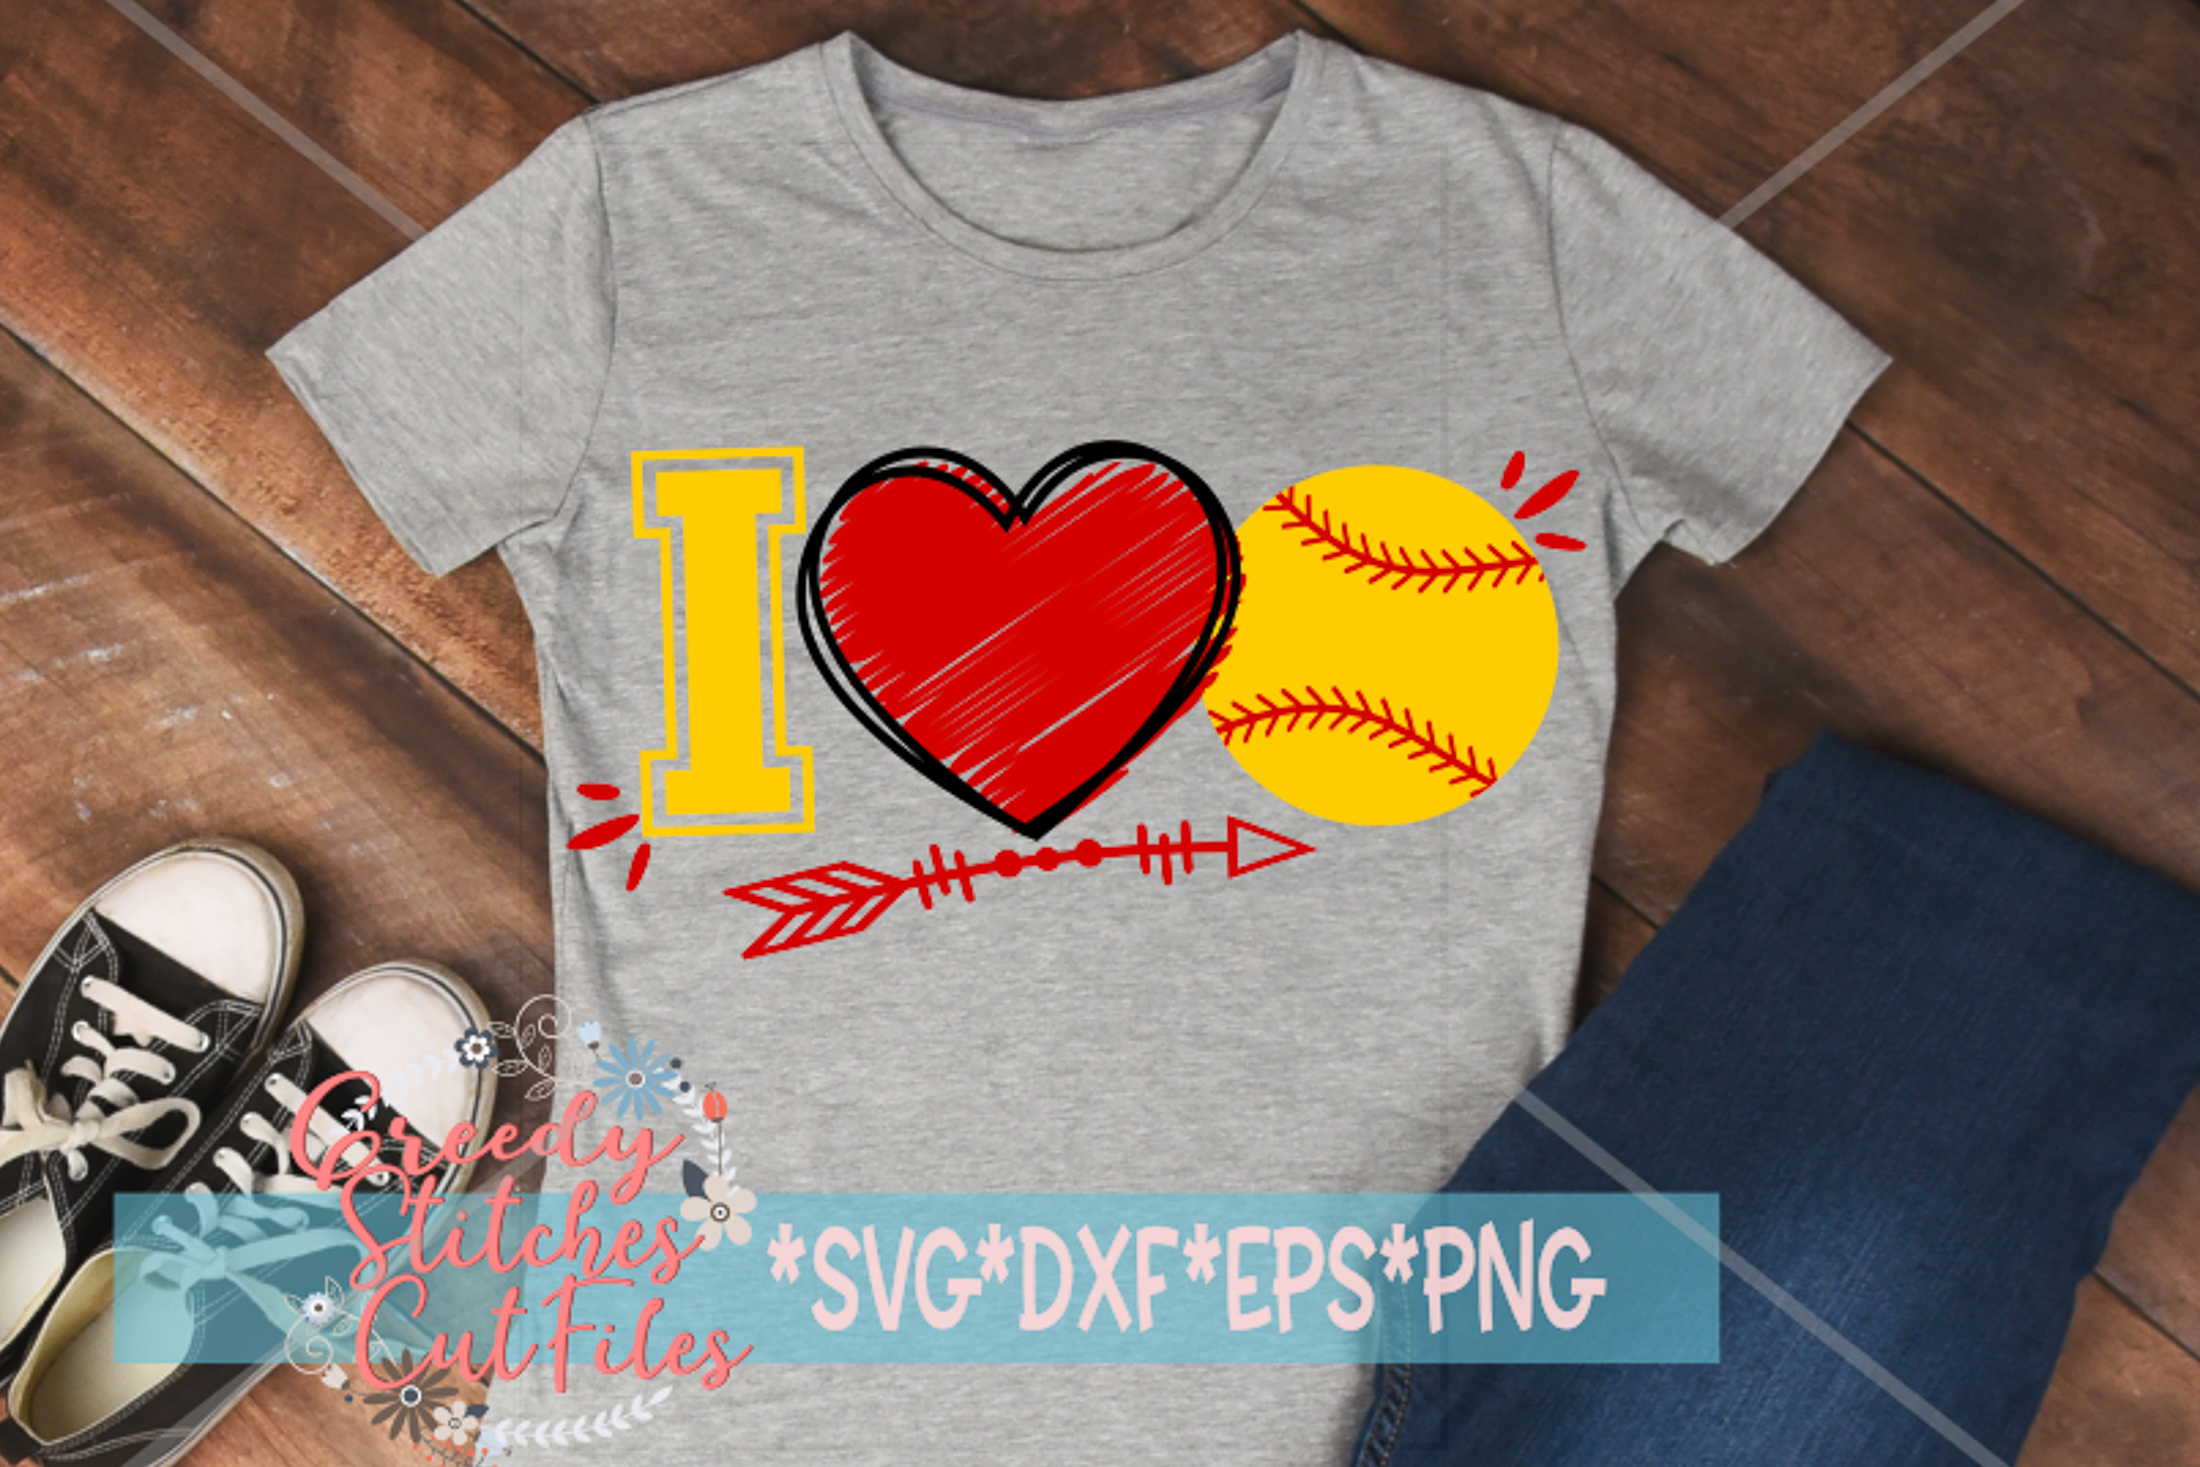 I Love Softball SVG, DXF, EPS, PNG Files example image 1